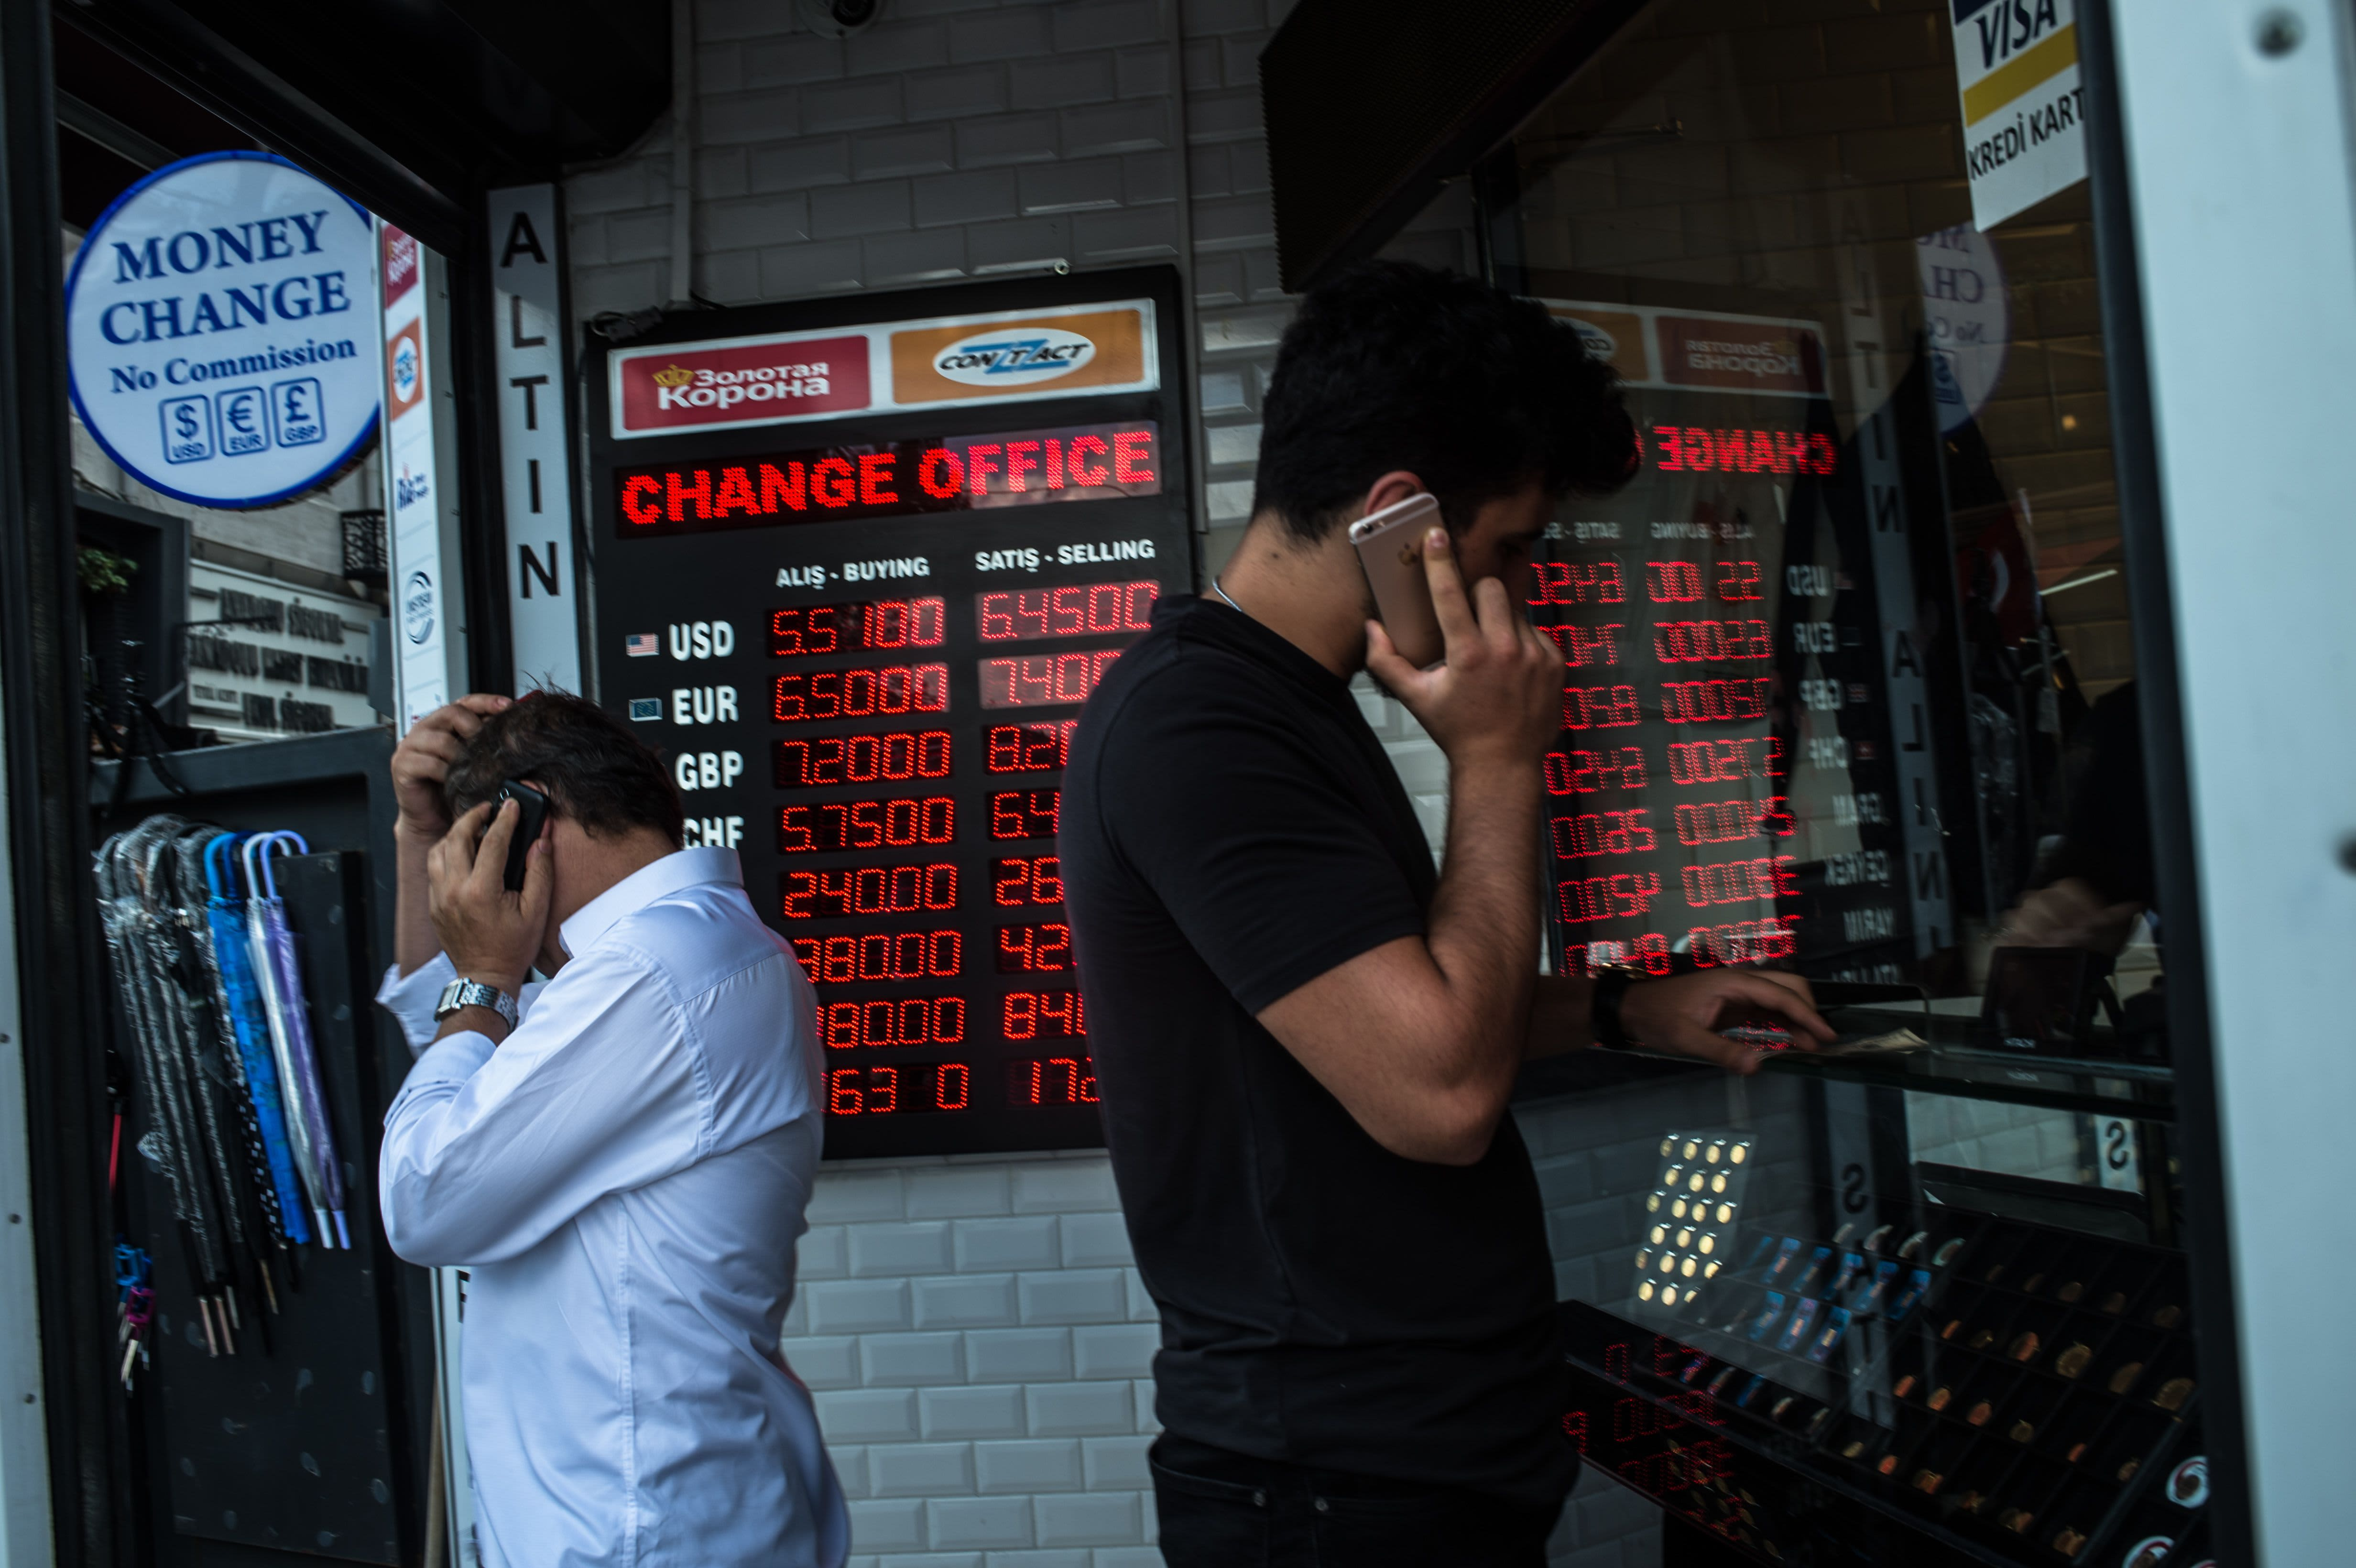 People check currency exchange rates at a currency exchange office on August 11, 2018 in Istanbul.